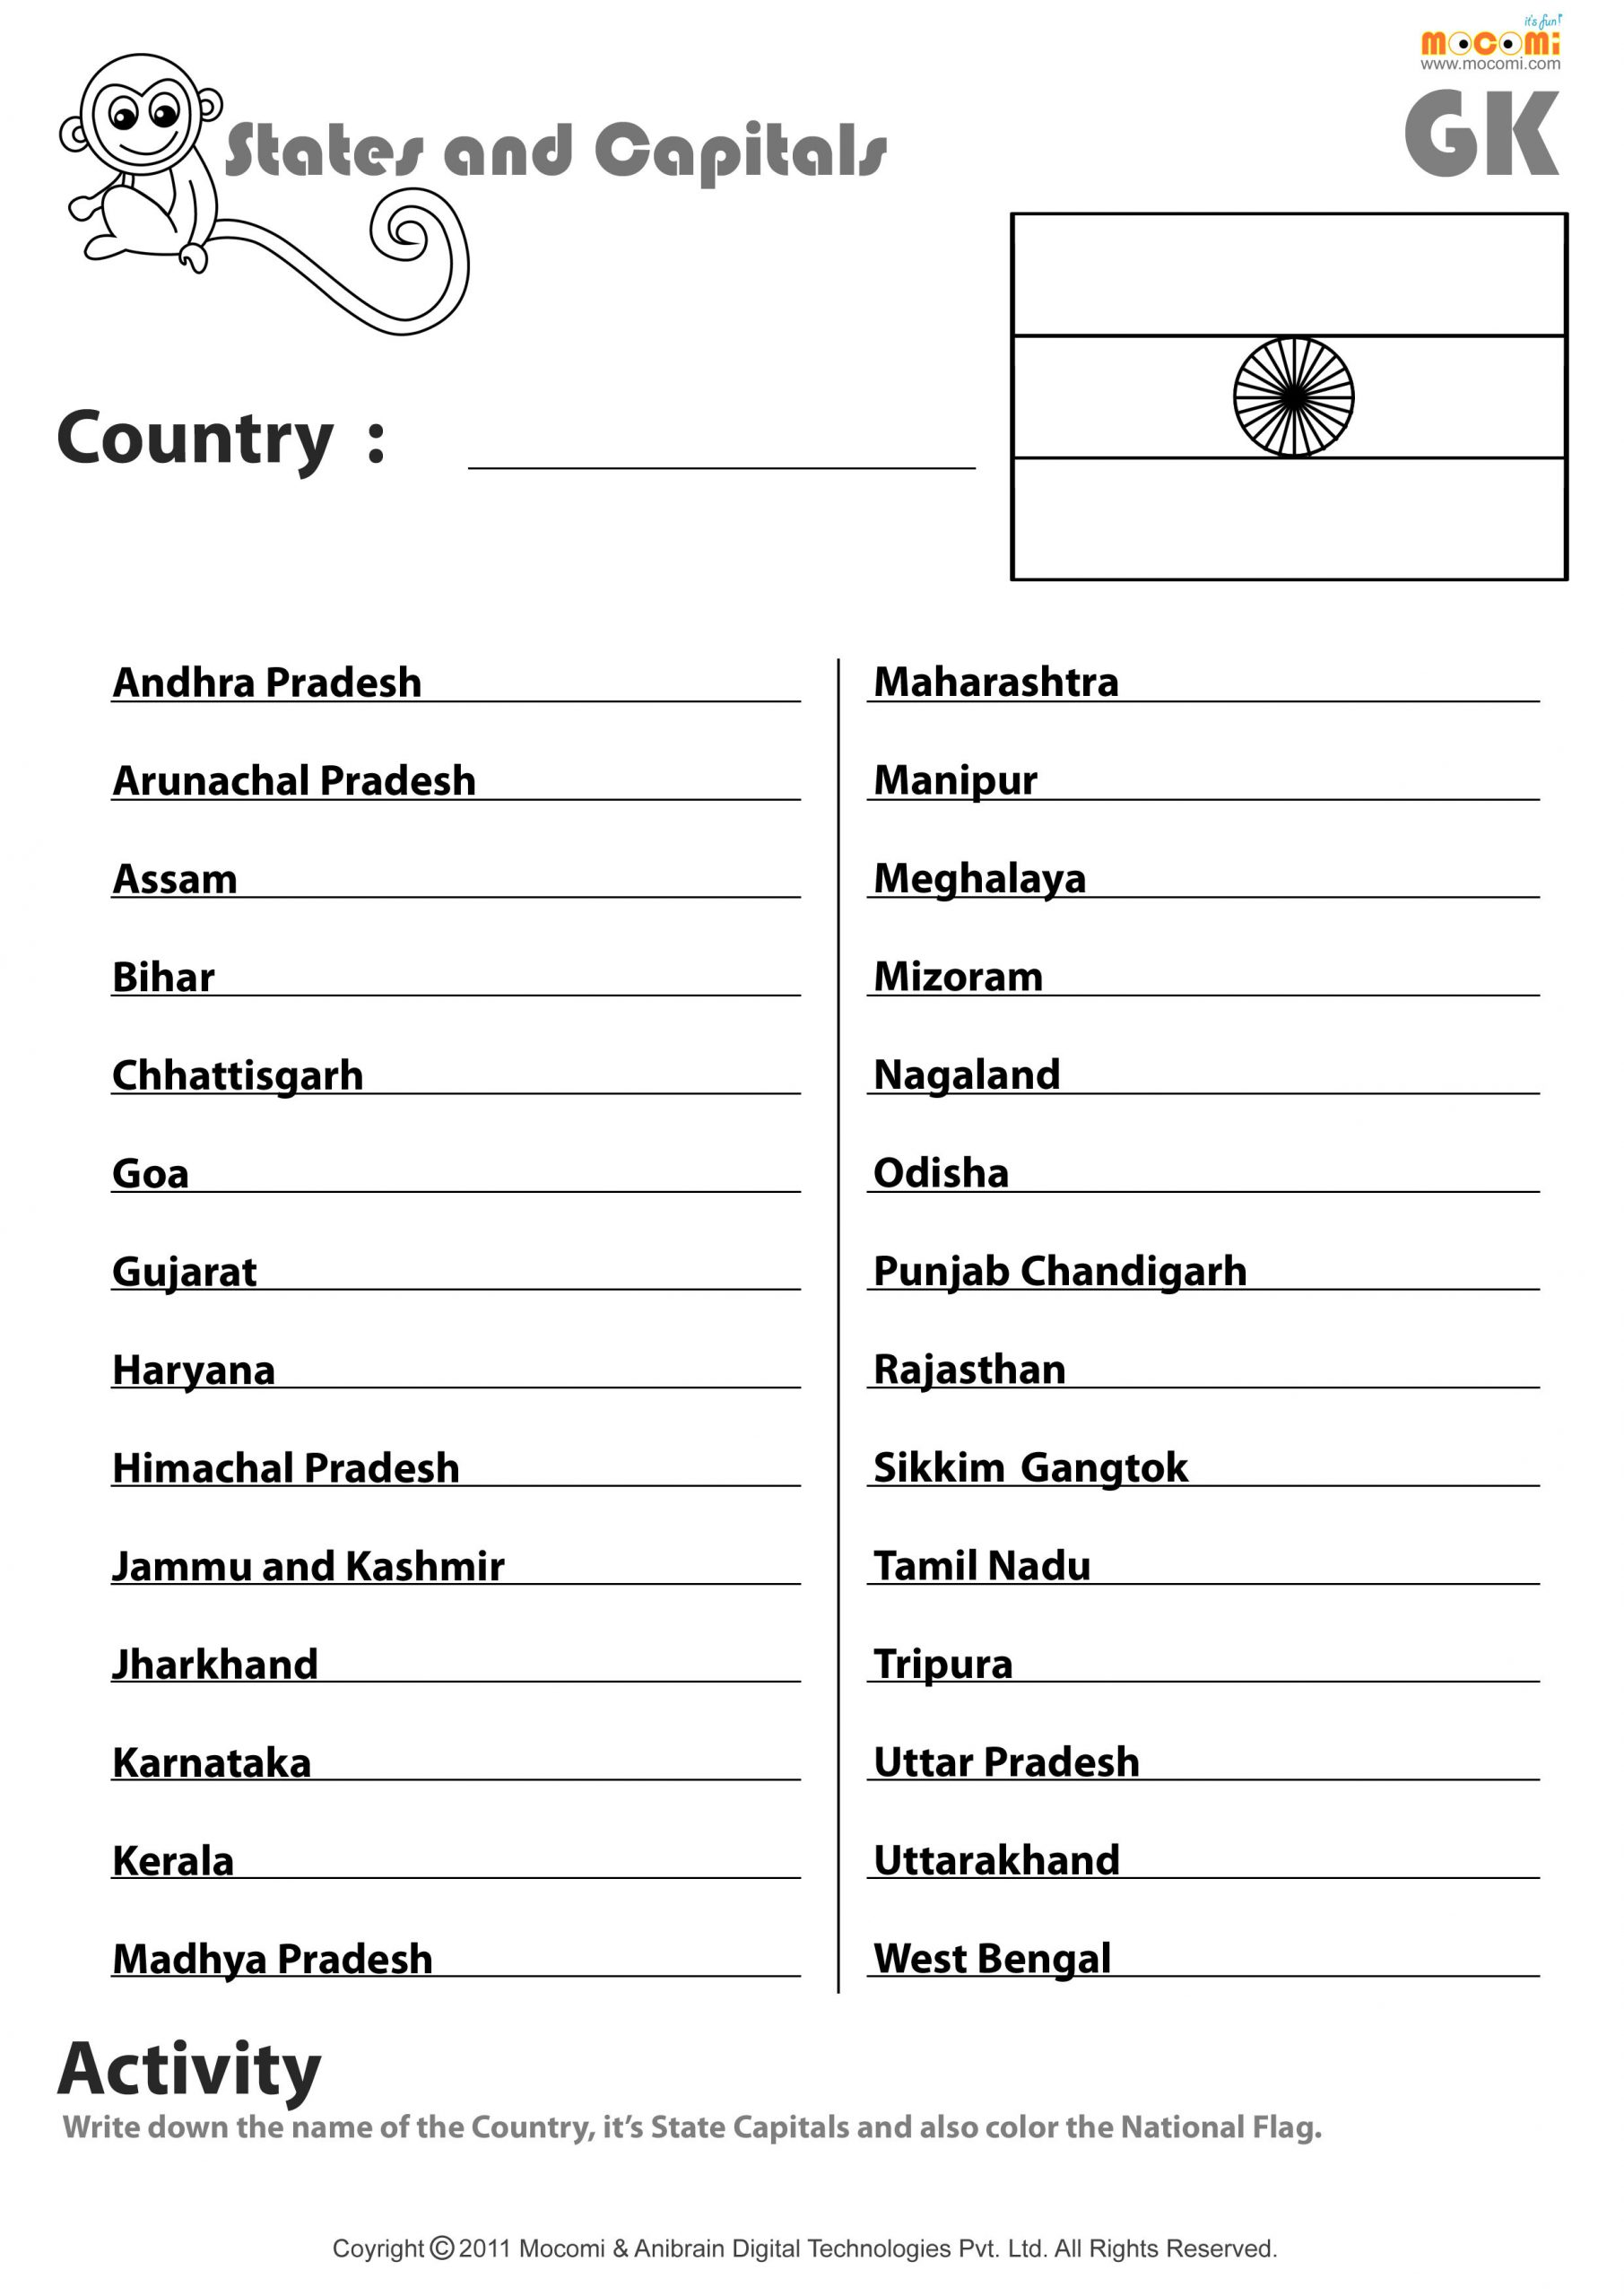 State Capitals Printable Quiz Indian States and their Capitals English Worksheets for